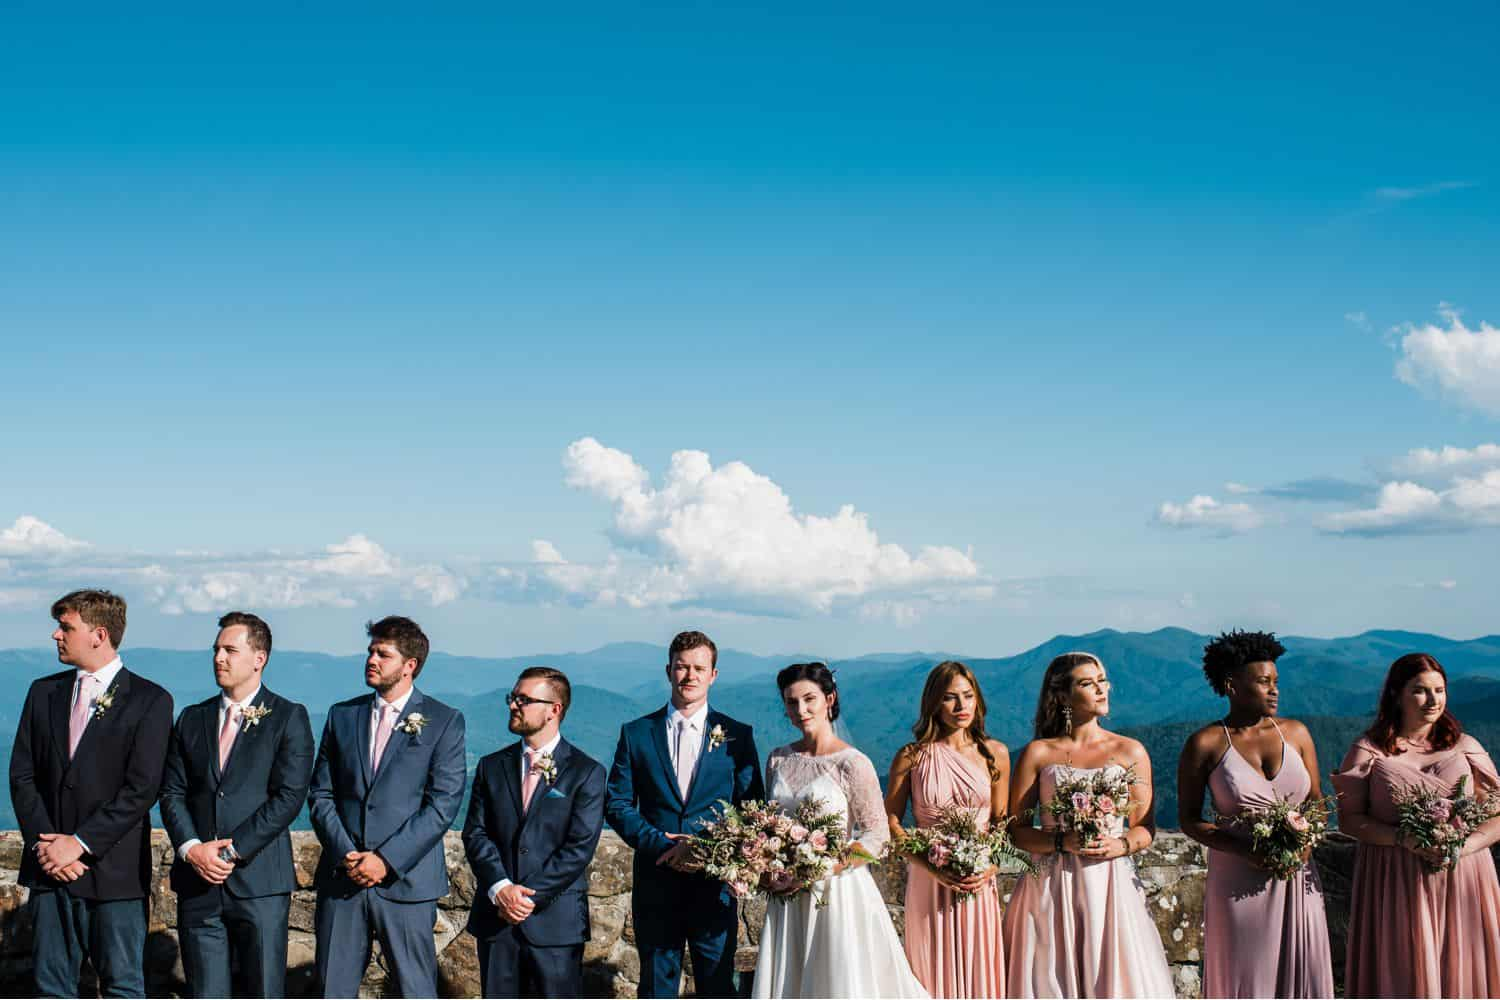 A wedding party stands under a blue sky overlooking the mountains.